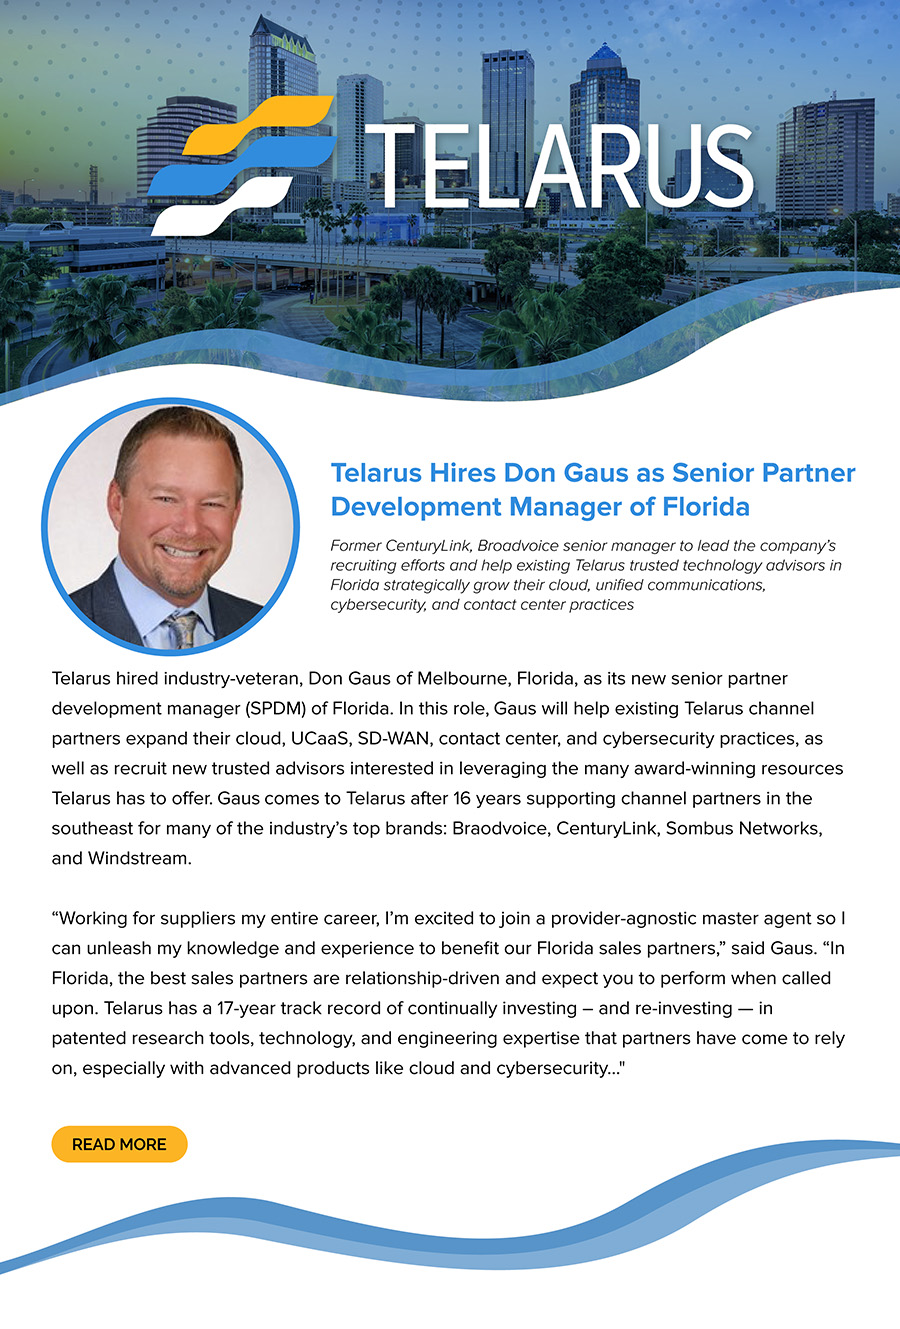 Telarus Hires Don Gaus as Senior Partner Development Manager of Florida